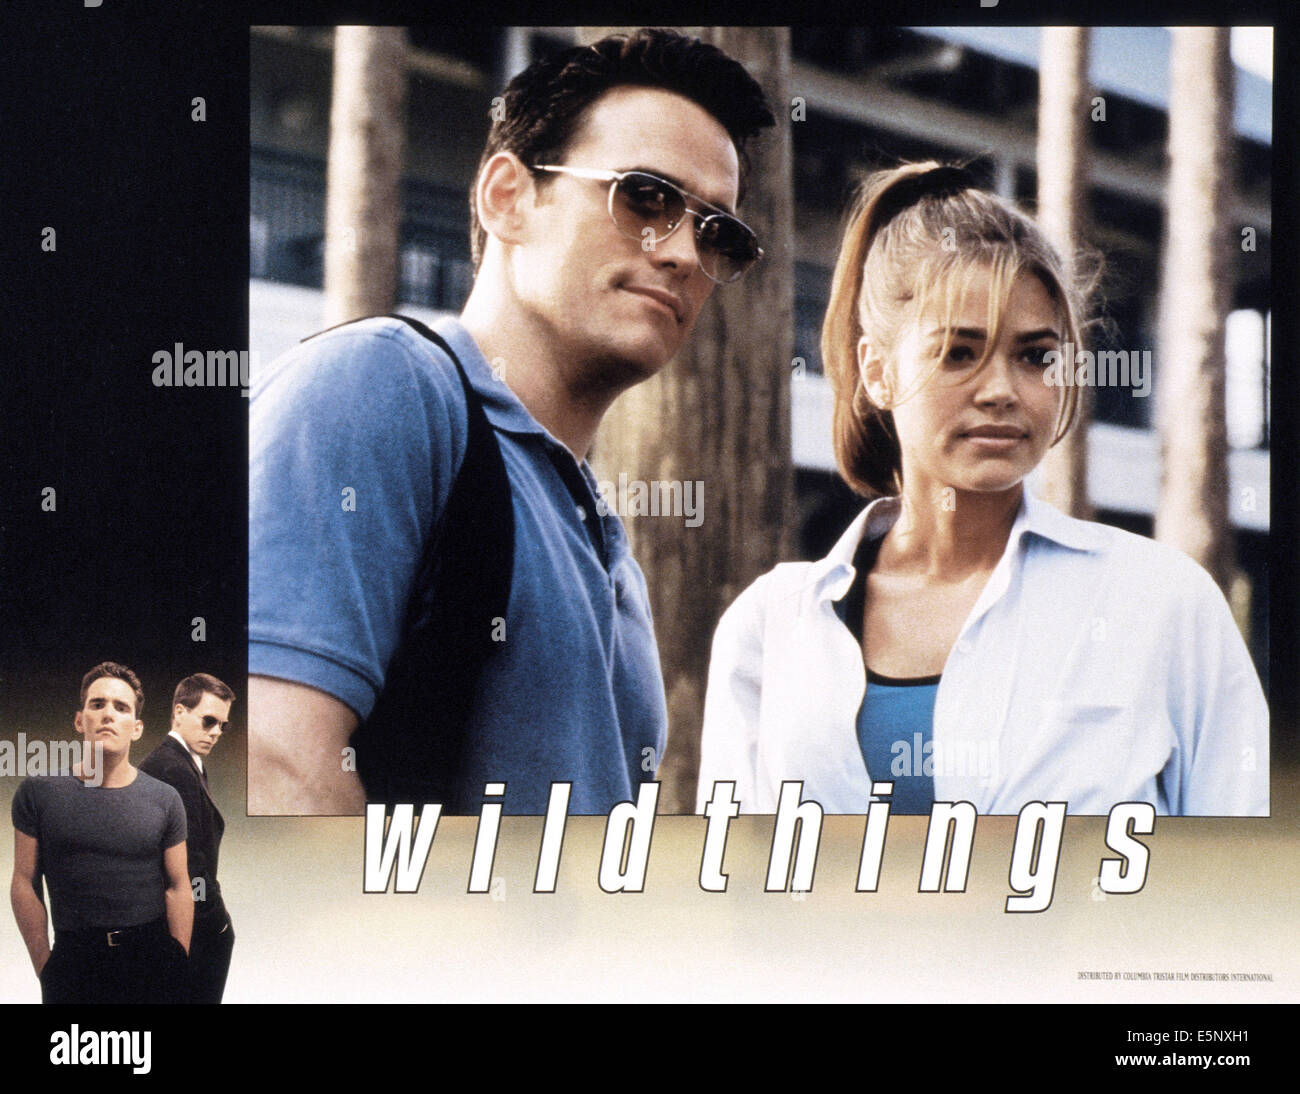 WILD THINGS, US lobbycard, from left: Matt Dillon, Kevin Bacon, Matt Dillon, Denise Richards, 1998, © Columbia/courtesy - Stock Image